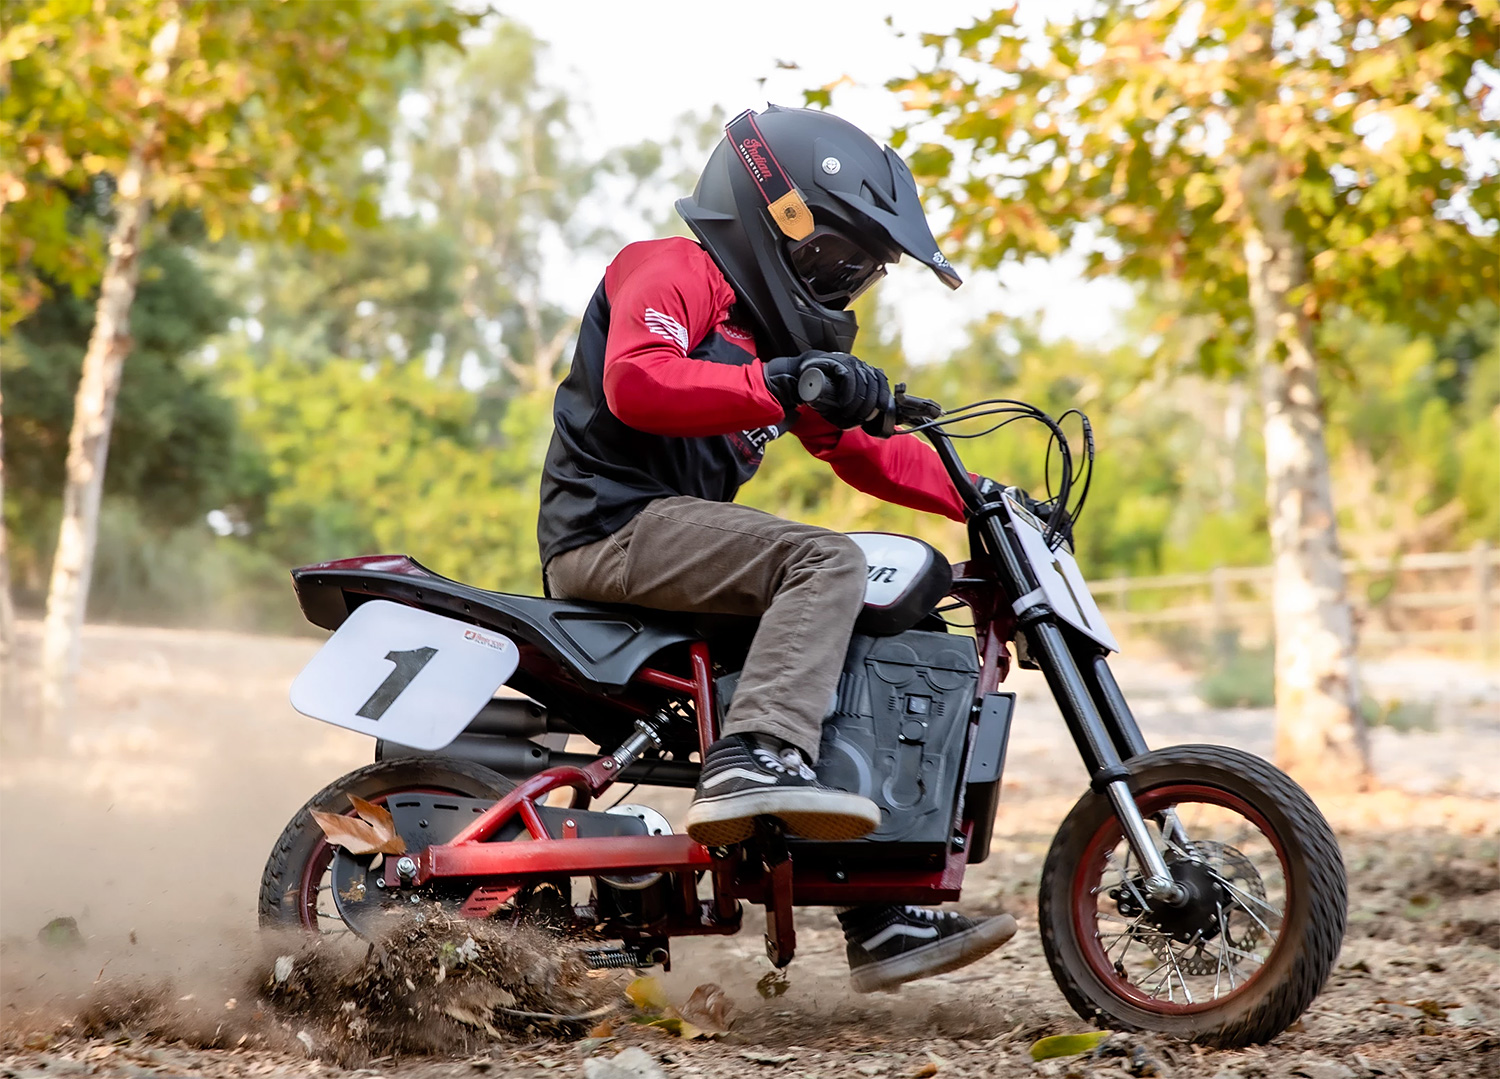 Indian Rolls Out an Electric Scrambler for the Kids at werd.com